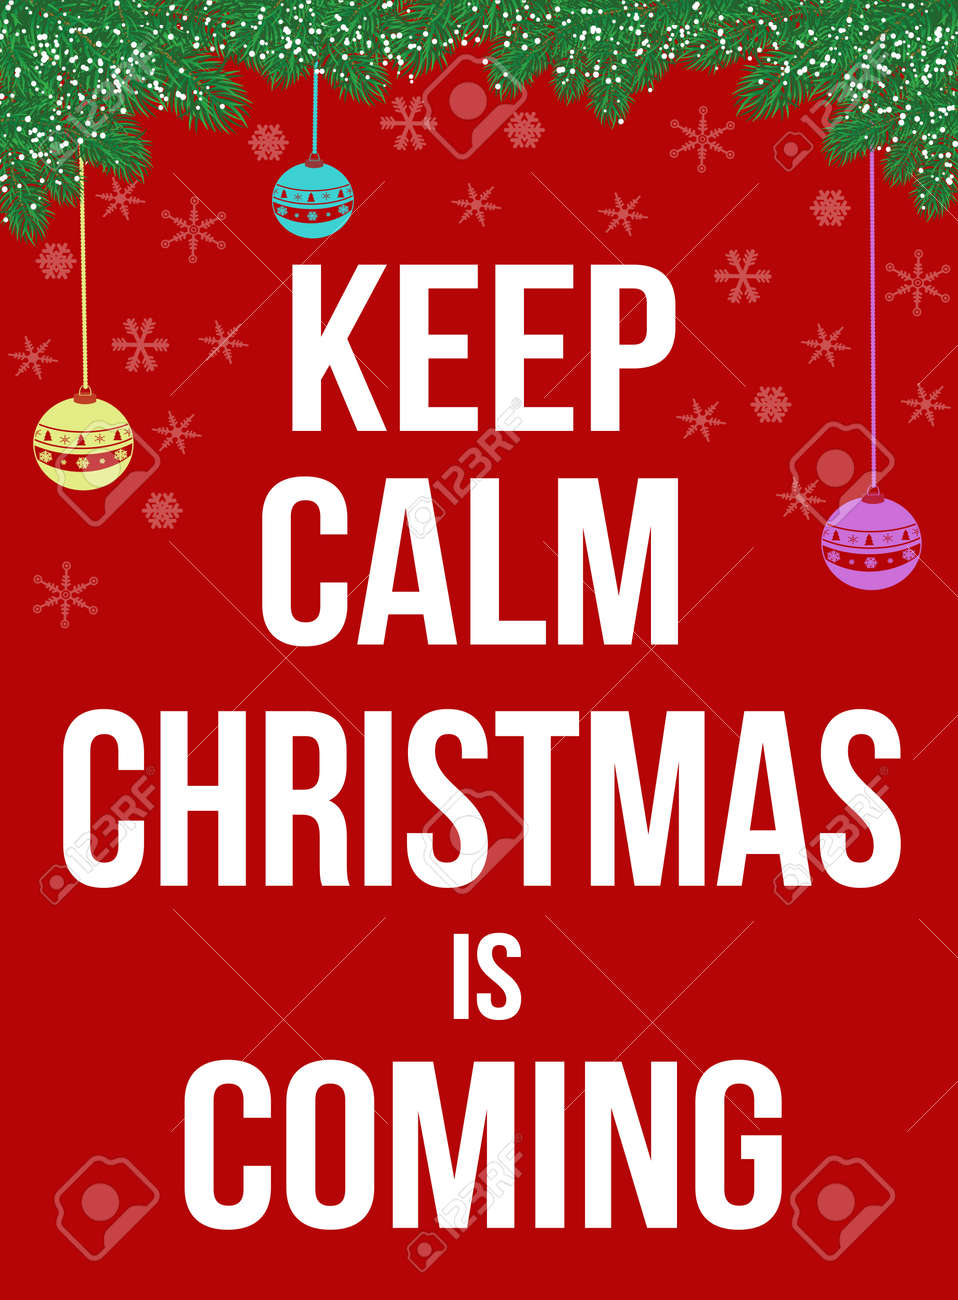 Keep Calm Christmas Is Coming Poster, Vector Illustration Royalty ...